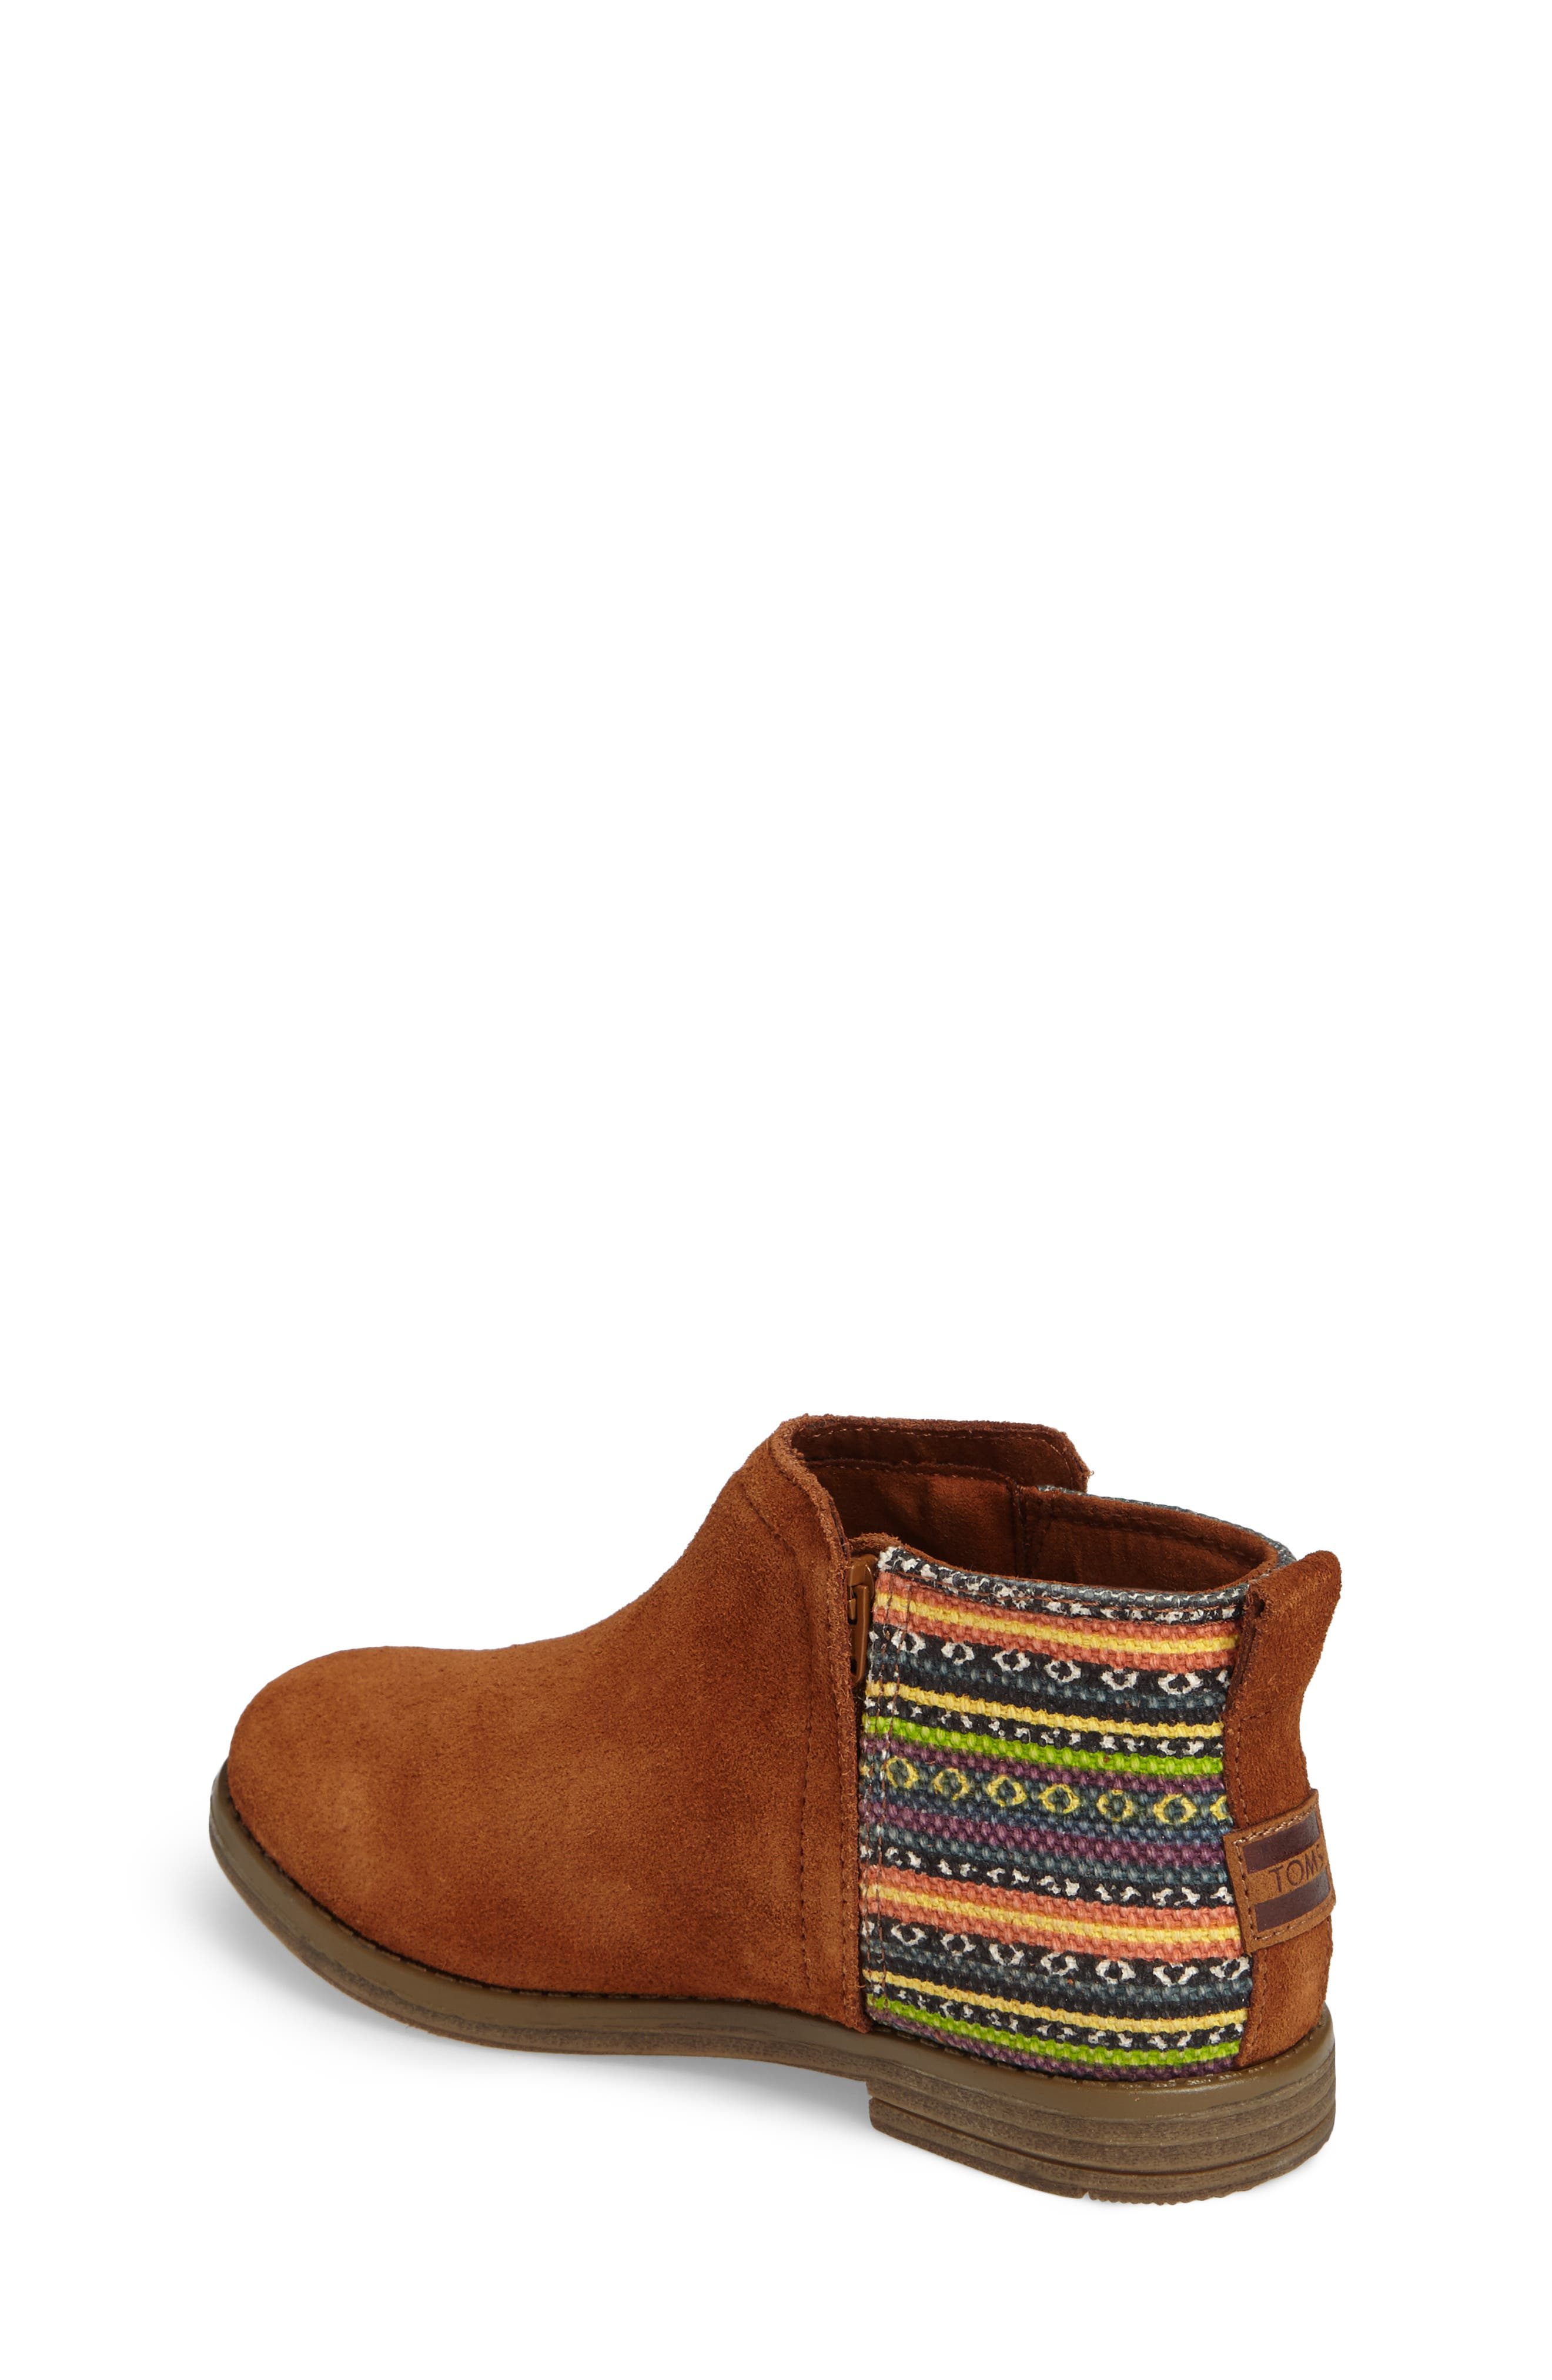 Alternate Image 2  - TOMS Deia Mixed Media Bootie (Toddler, Little Kid & Big Kid)